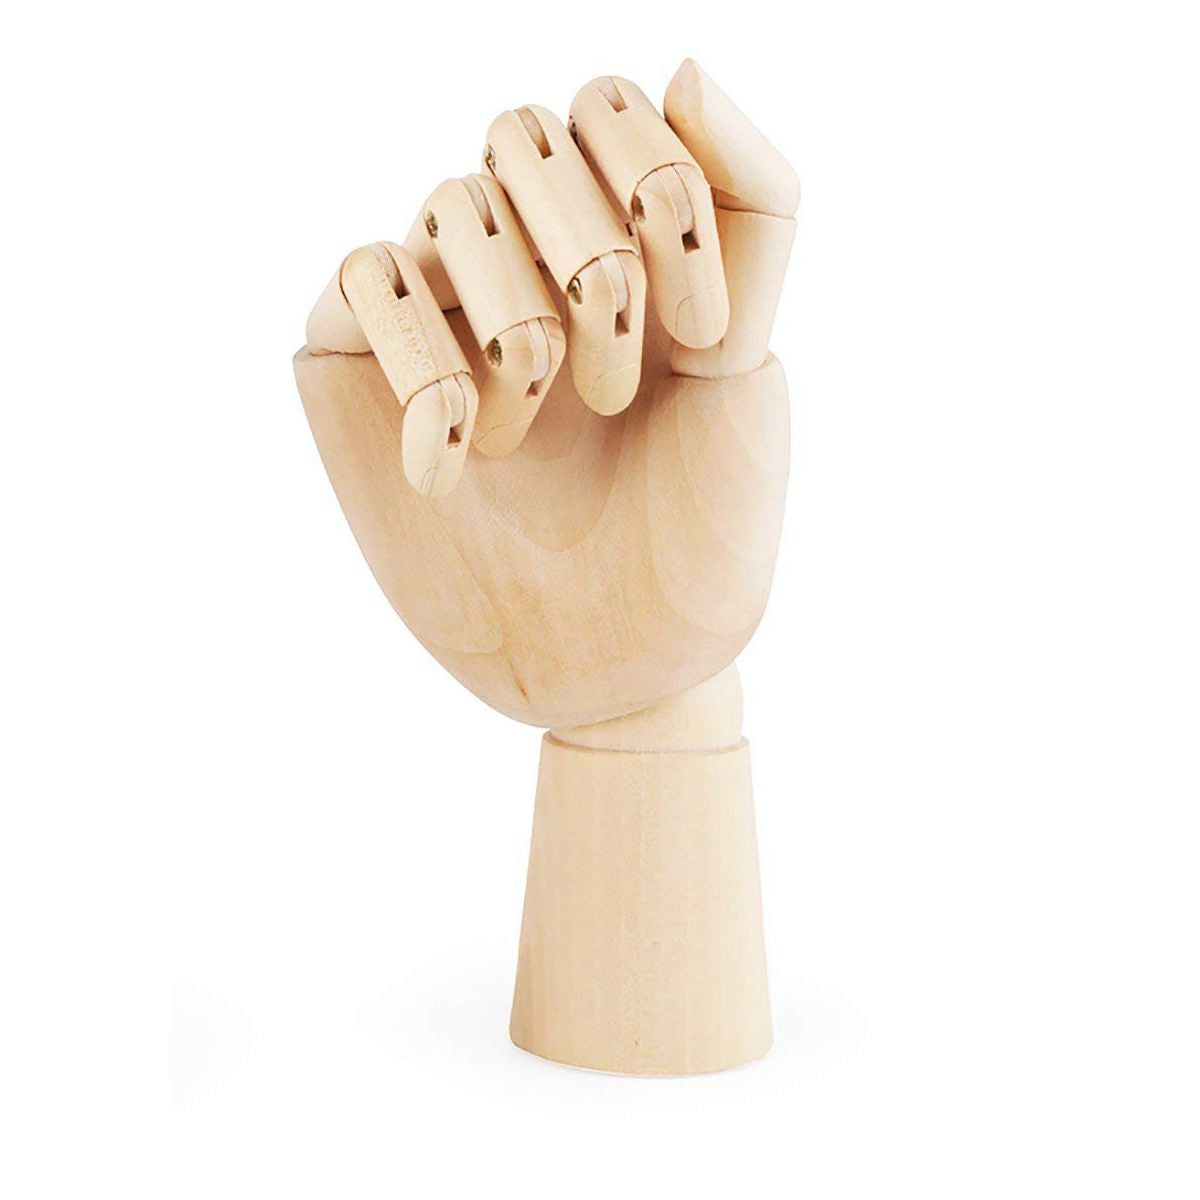 Hand Mannequin - For Illustrators